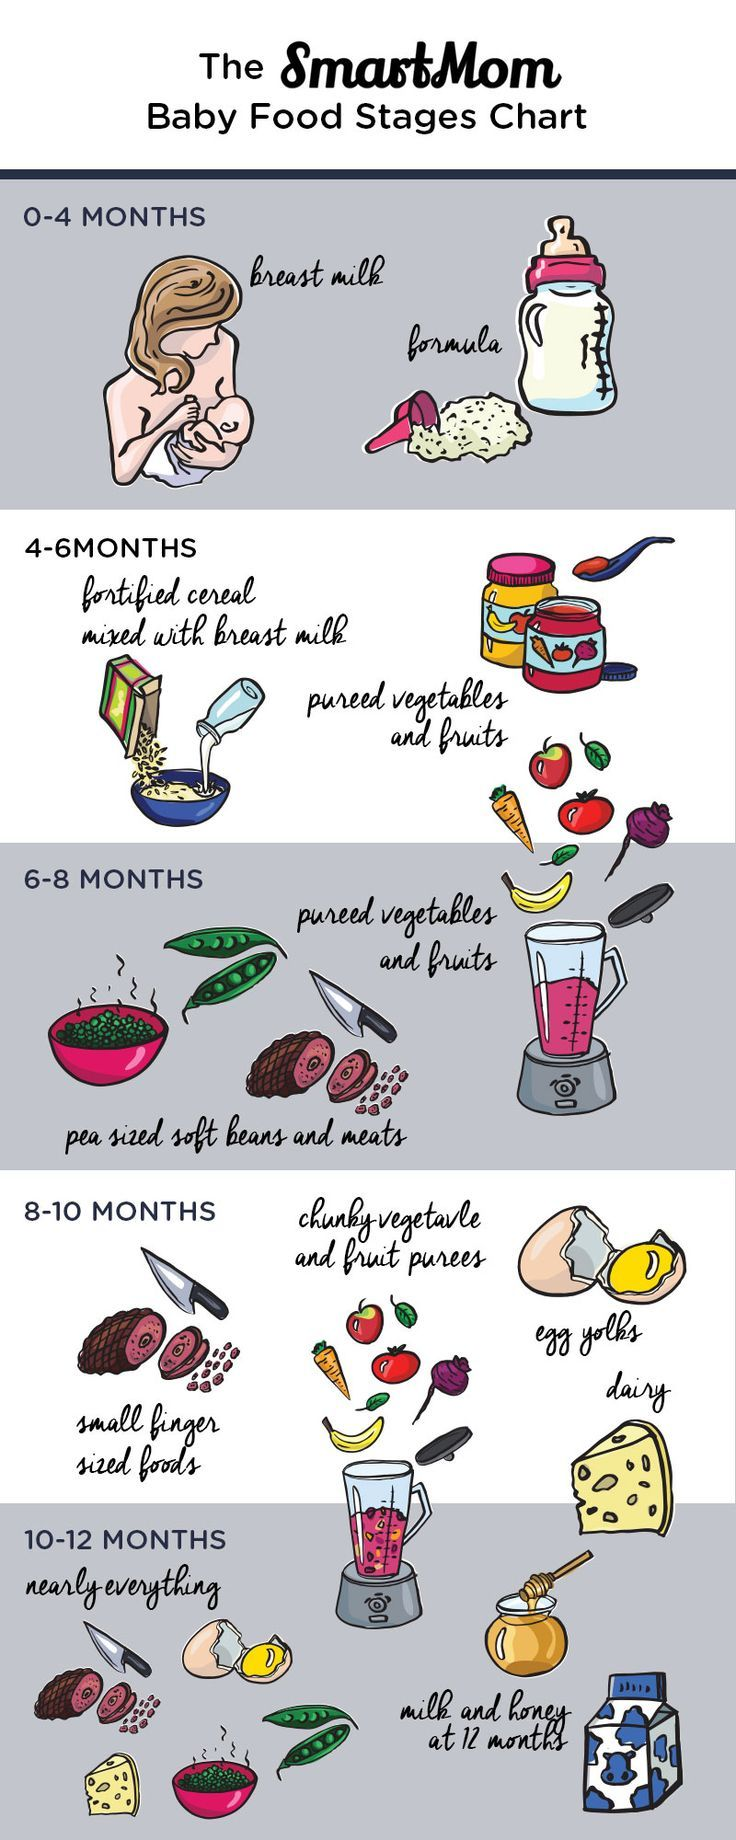 Best 25 weight chart for babies ideas on pinterest baby height theres thousands of baby food and stages information out there so we created a smartmom baby food stages chart to make things easy for you nvjuhfo Images